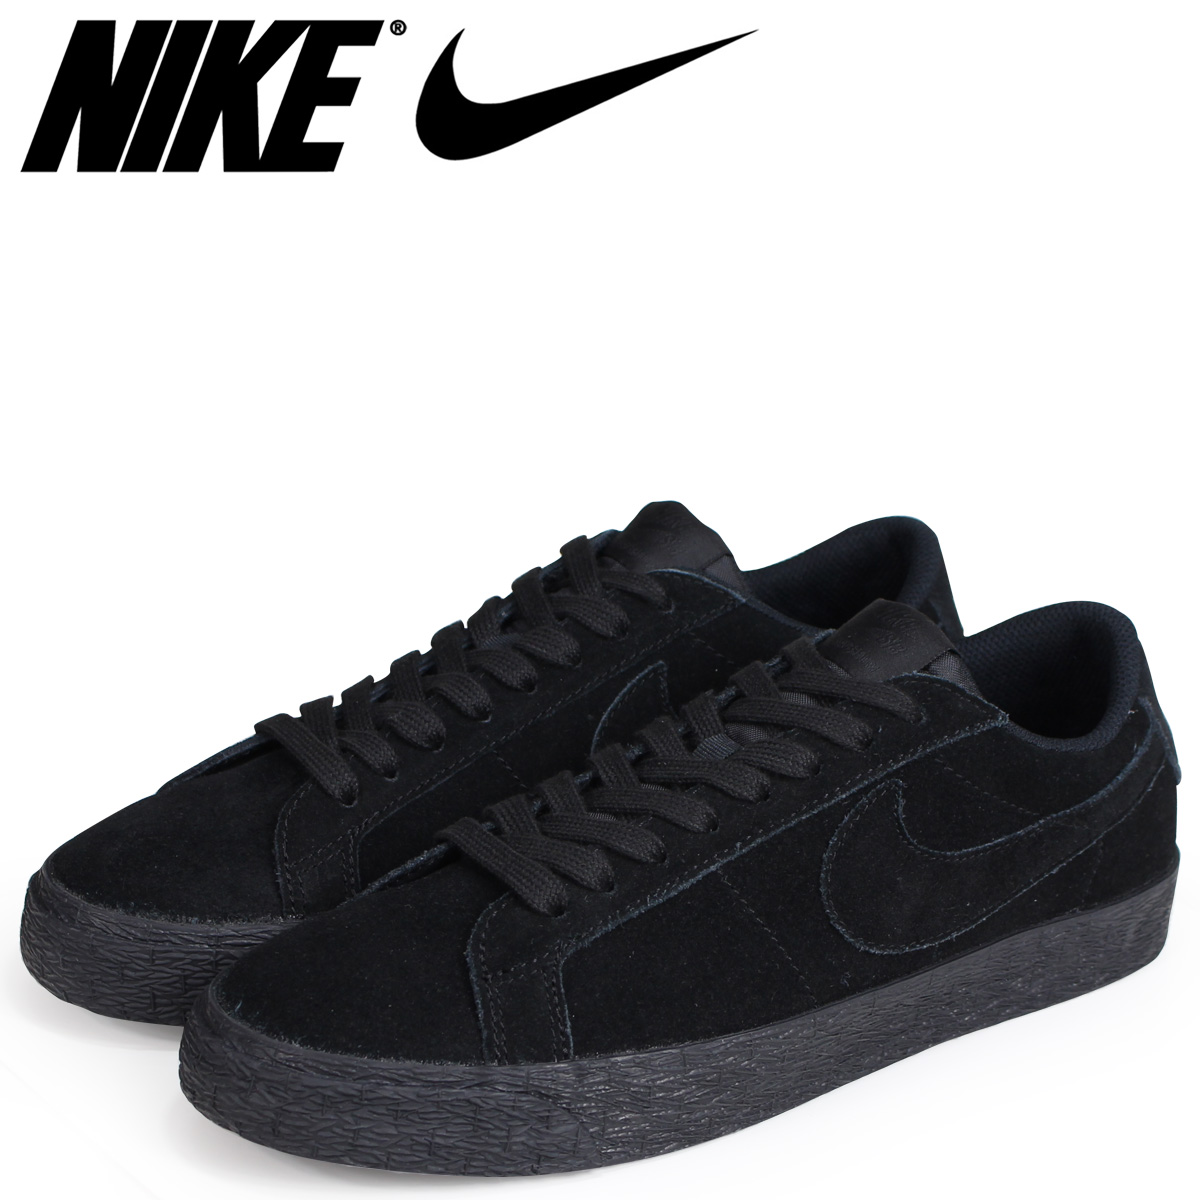 new arrival cd248 2f8f5 NIKE Nike SB blazer low sneakers men ZOOM BLAZER LOW 864,347-004 black black